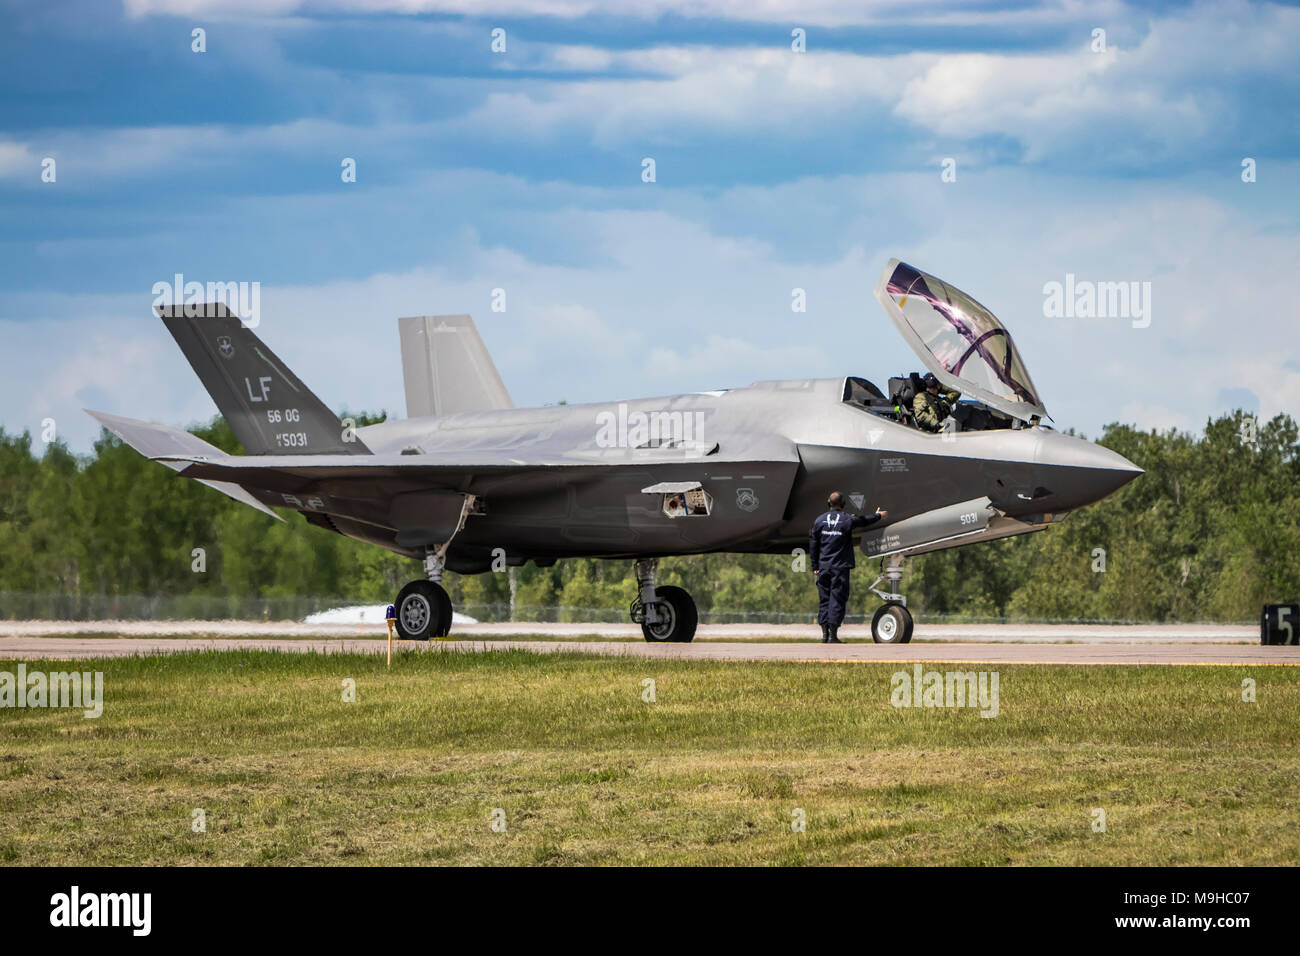 An F-35A fighter jet being prepared for takeoff at the 2017 Airshow in Duluth, Minnesota, USA. - Stock Image